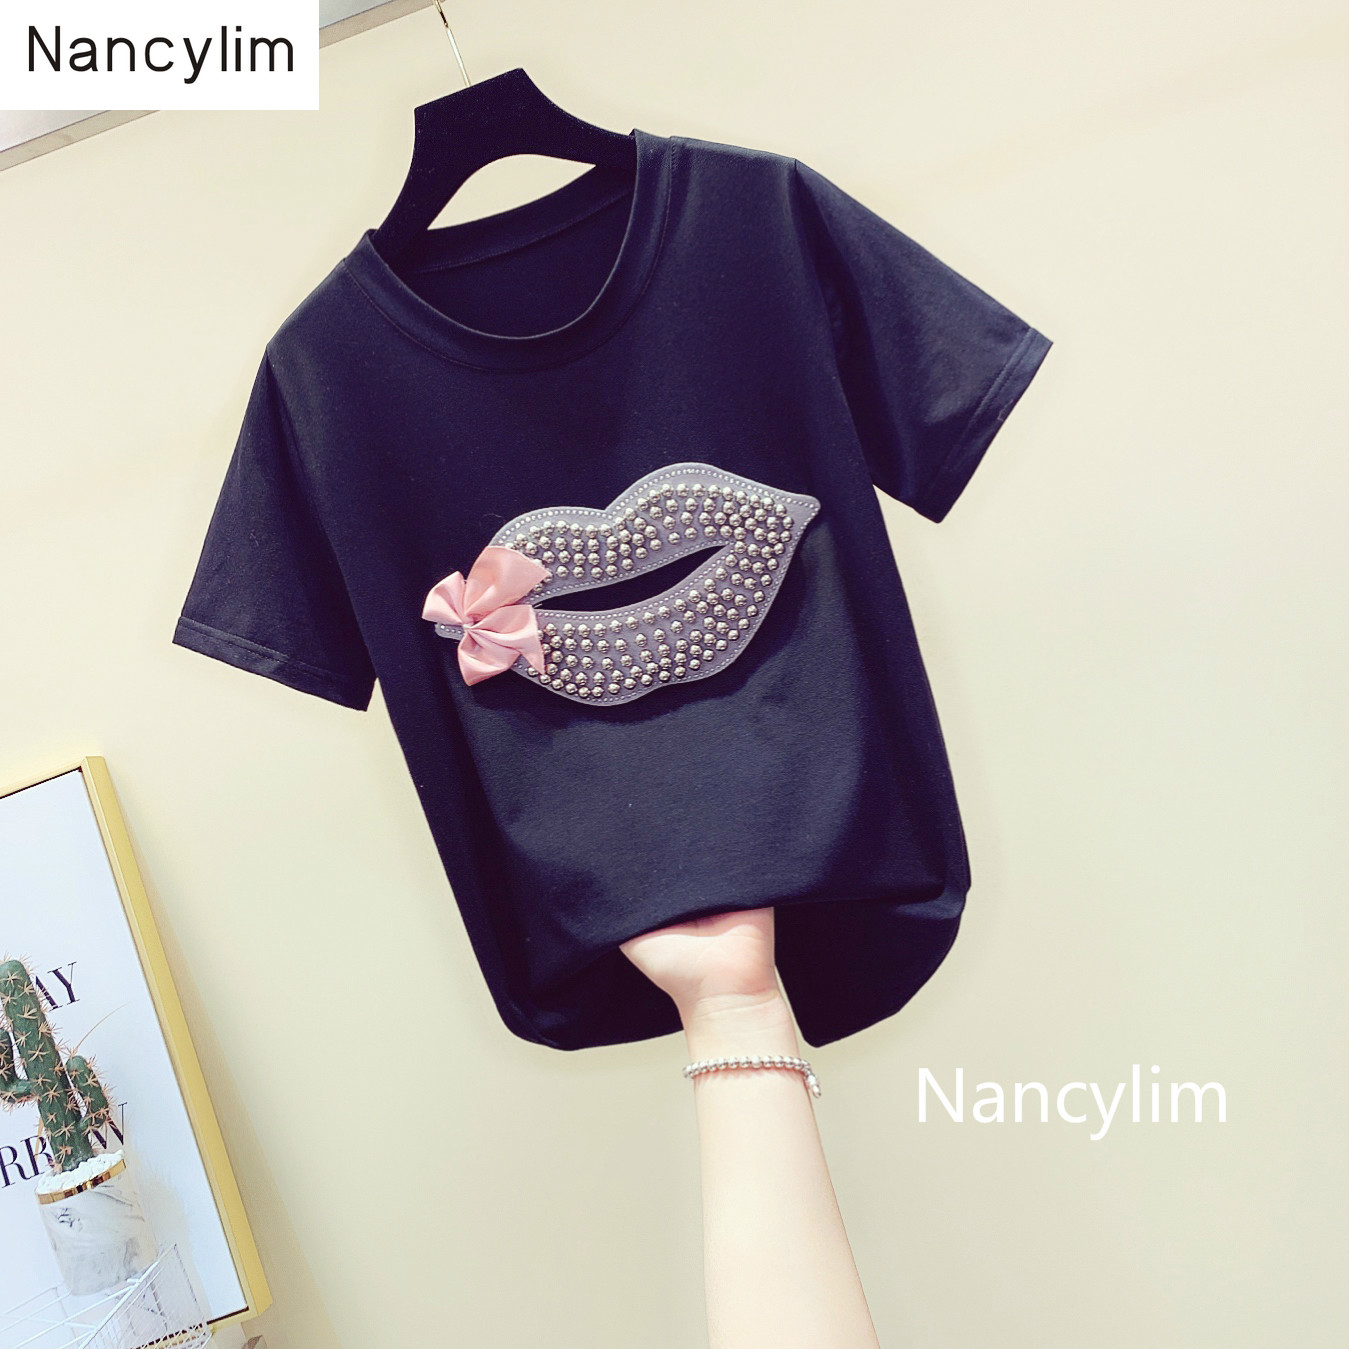 Plus Size Tee Nail-beaded Lip-print Bow-tie T-shirt with Round Collar Loose Korean Tshirt Girl Lady New Summer Shirt Shirts Tops image